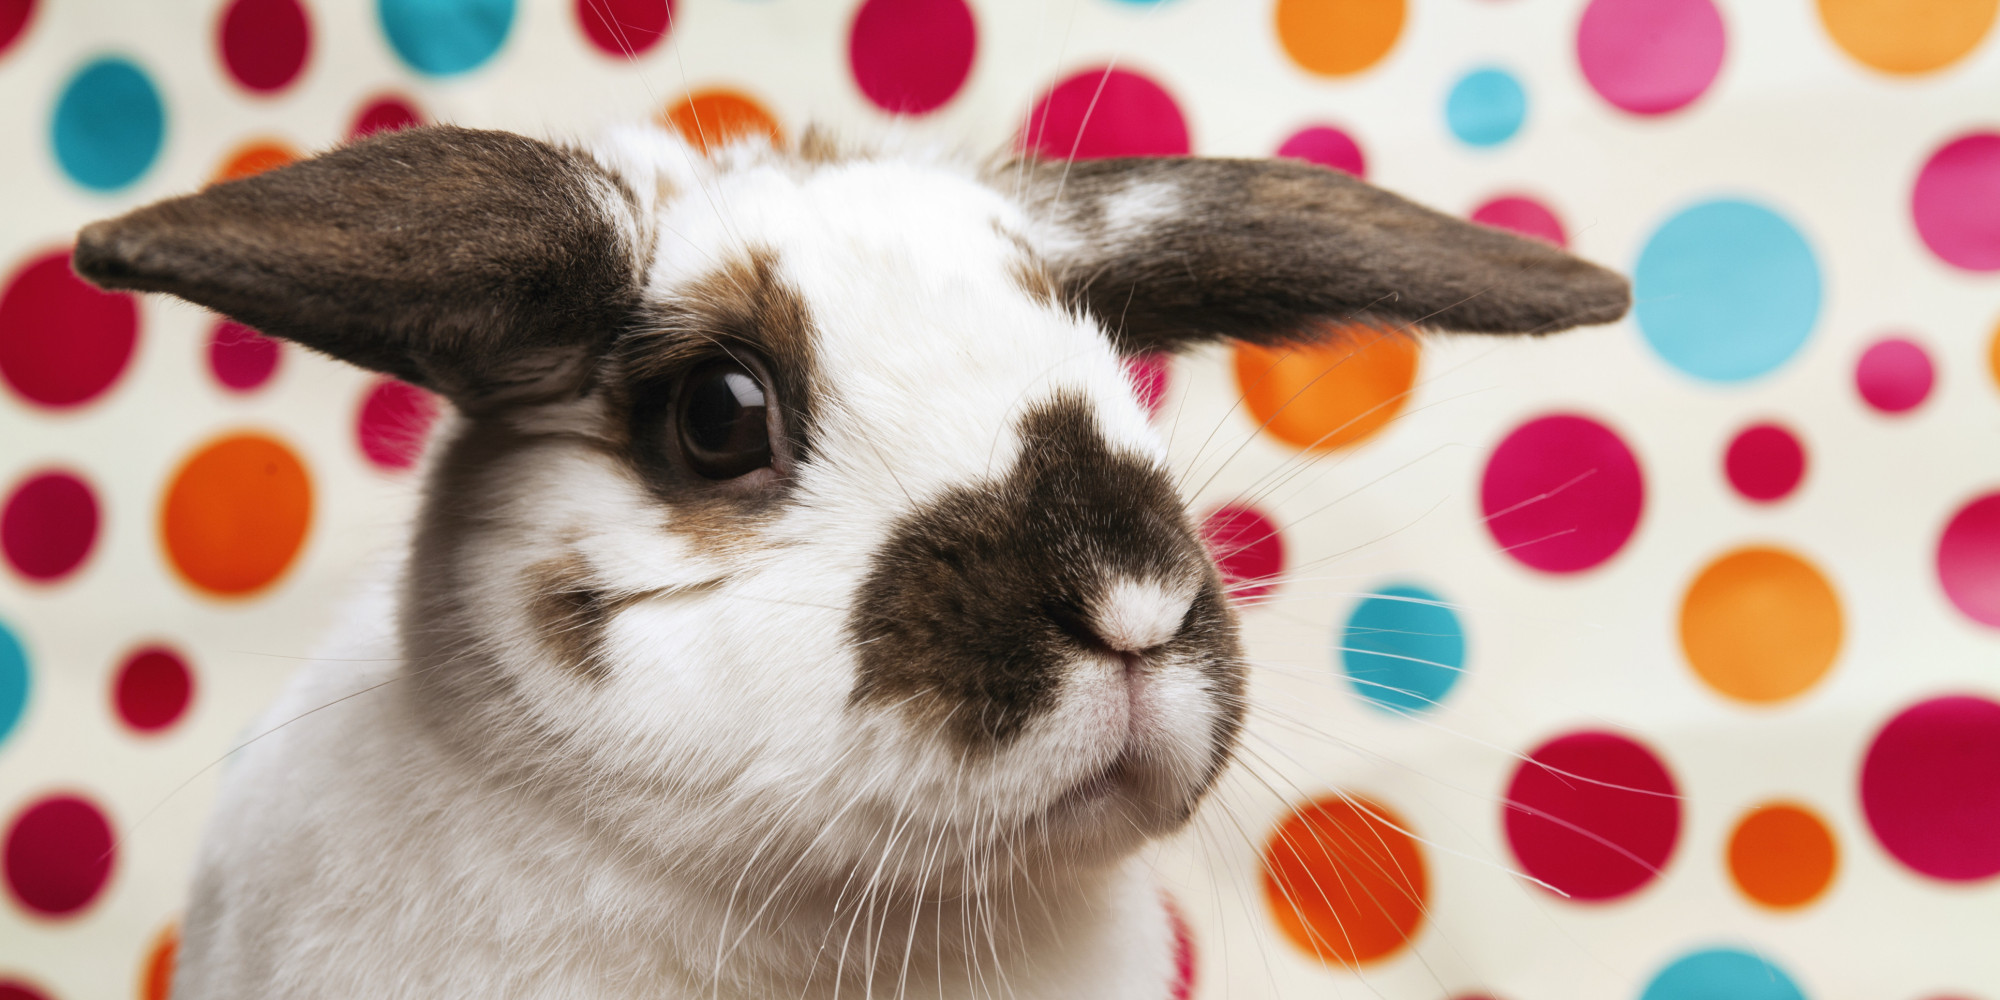 Best Decorations For Easter 8 Decor And Game Ideas For Adults This Month